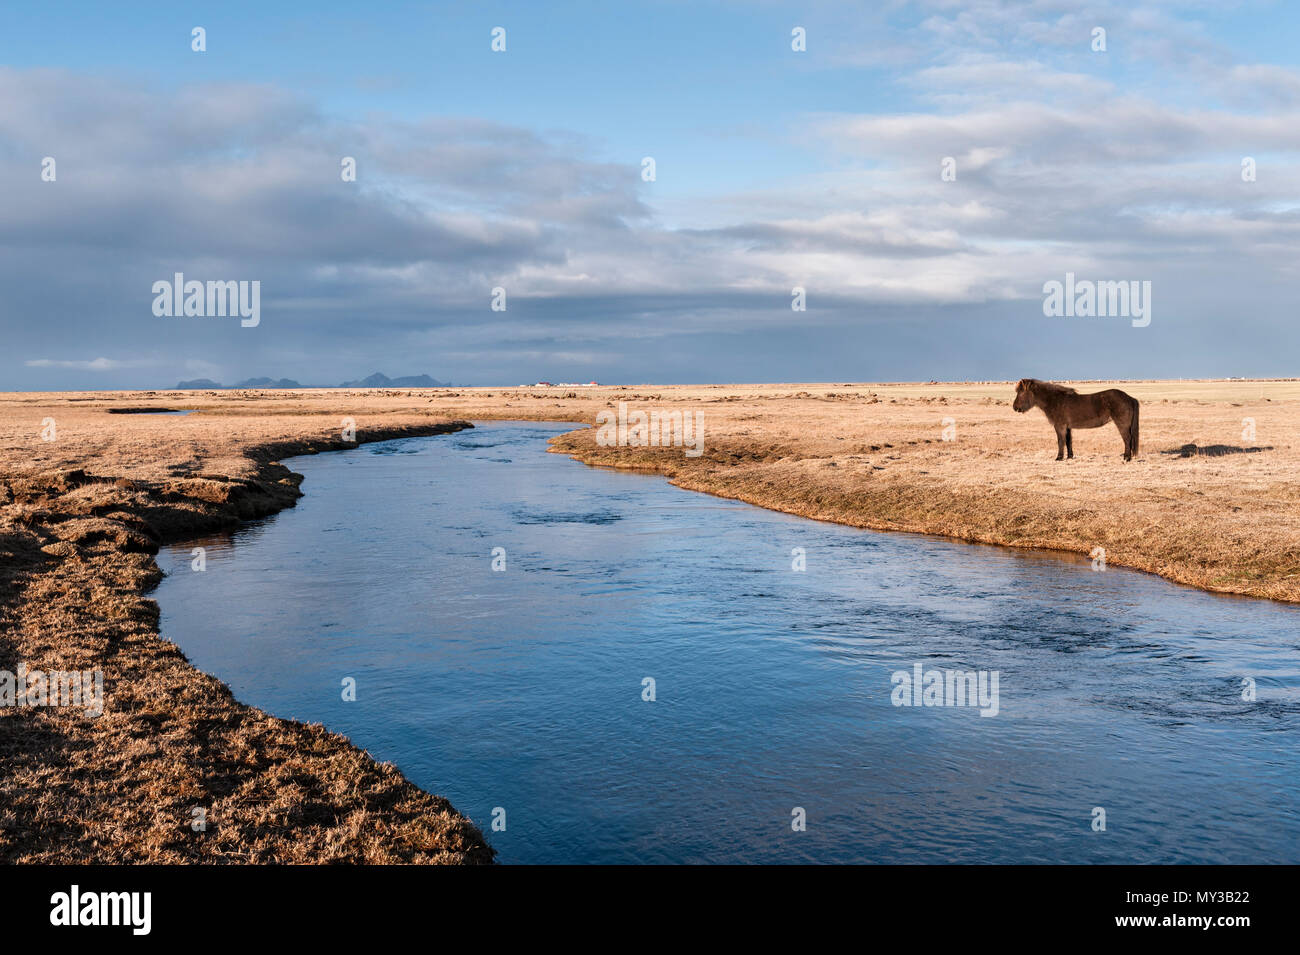 South Iceland. An Icelandic horse by the Holtsá river, just south of  Eyjafjallajökull, seen in the early morning from the Ring Road - Stock Image